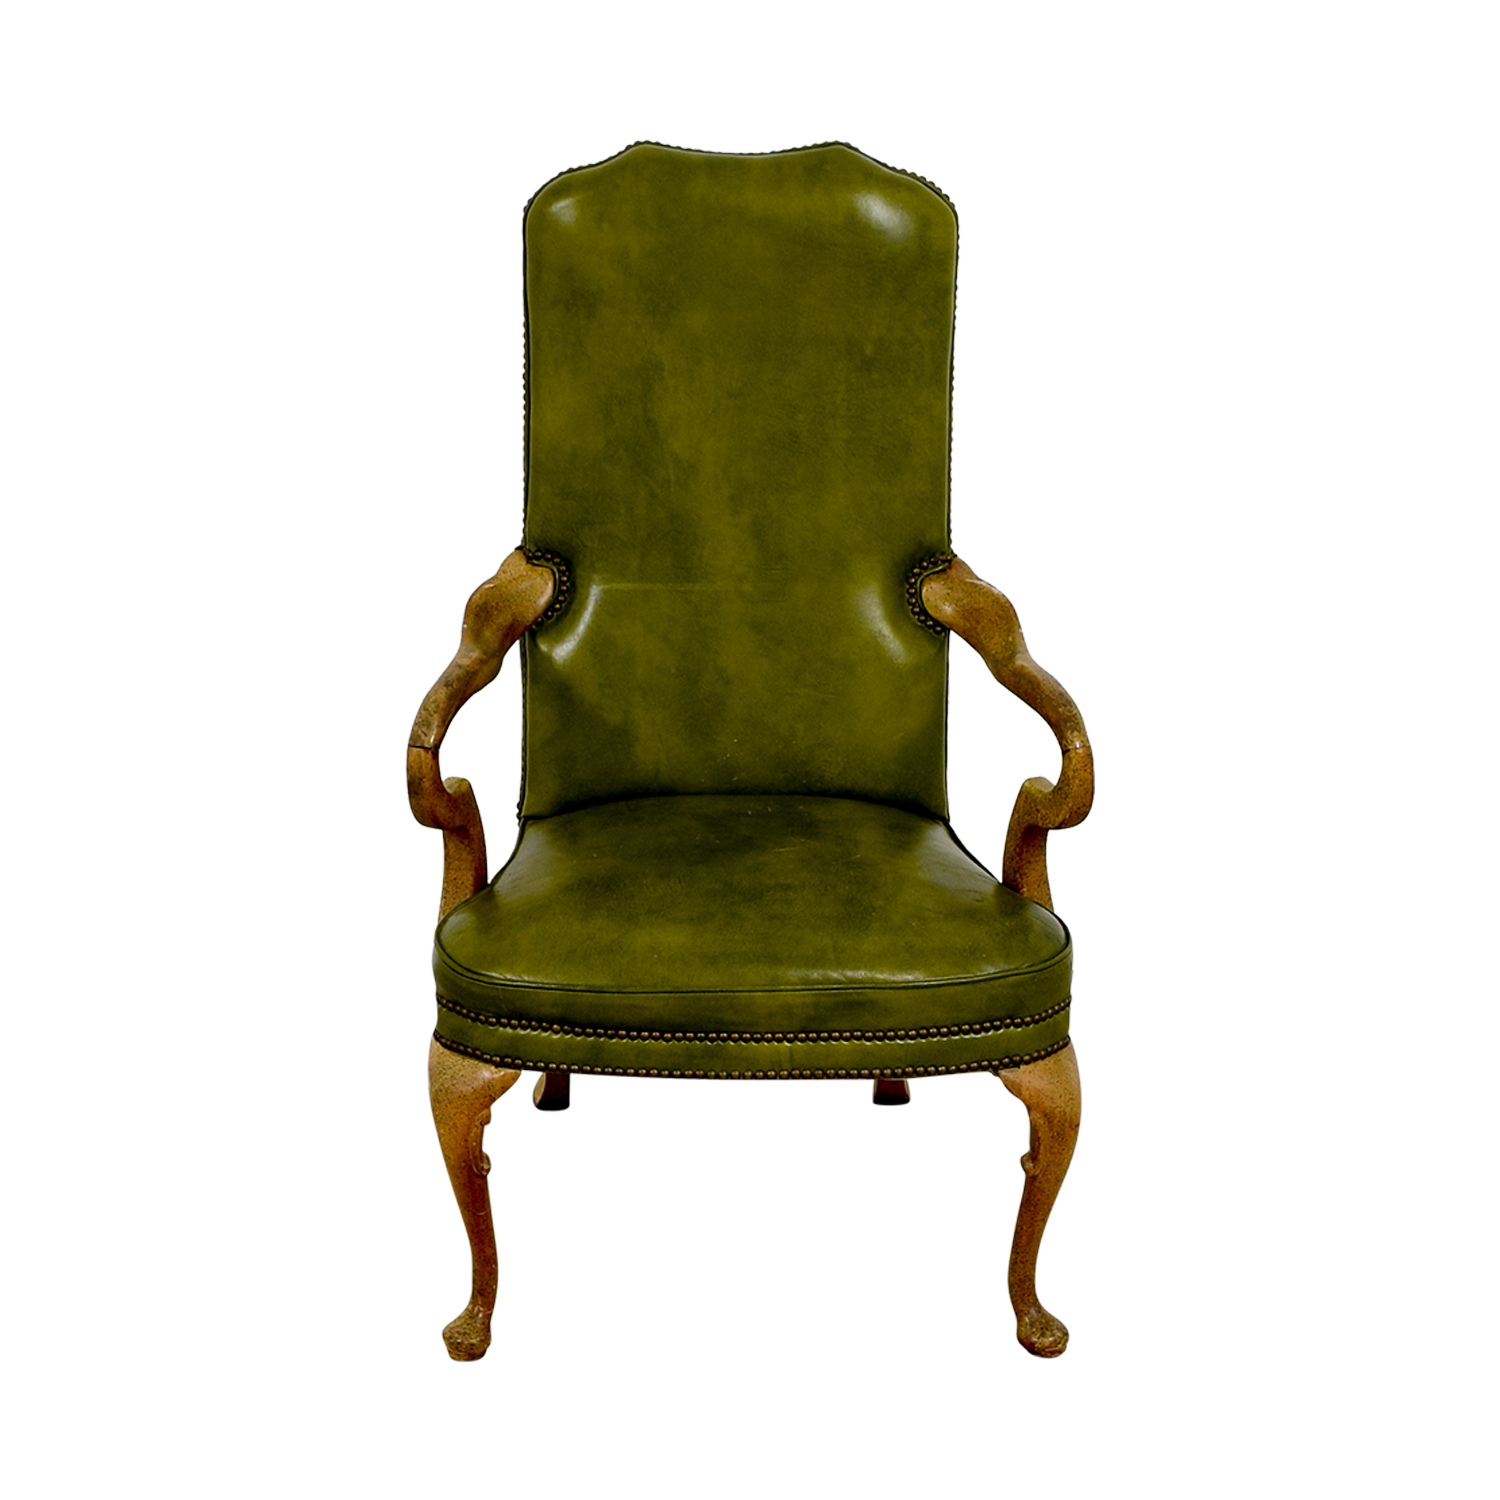 Green Leather Studded Regency Chair nyc